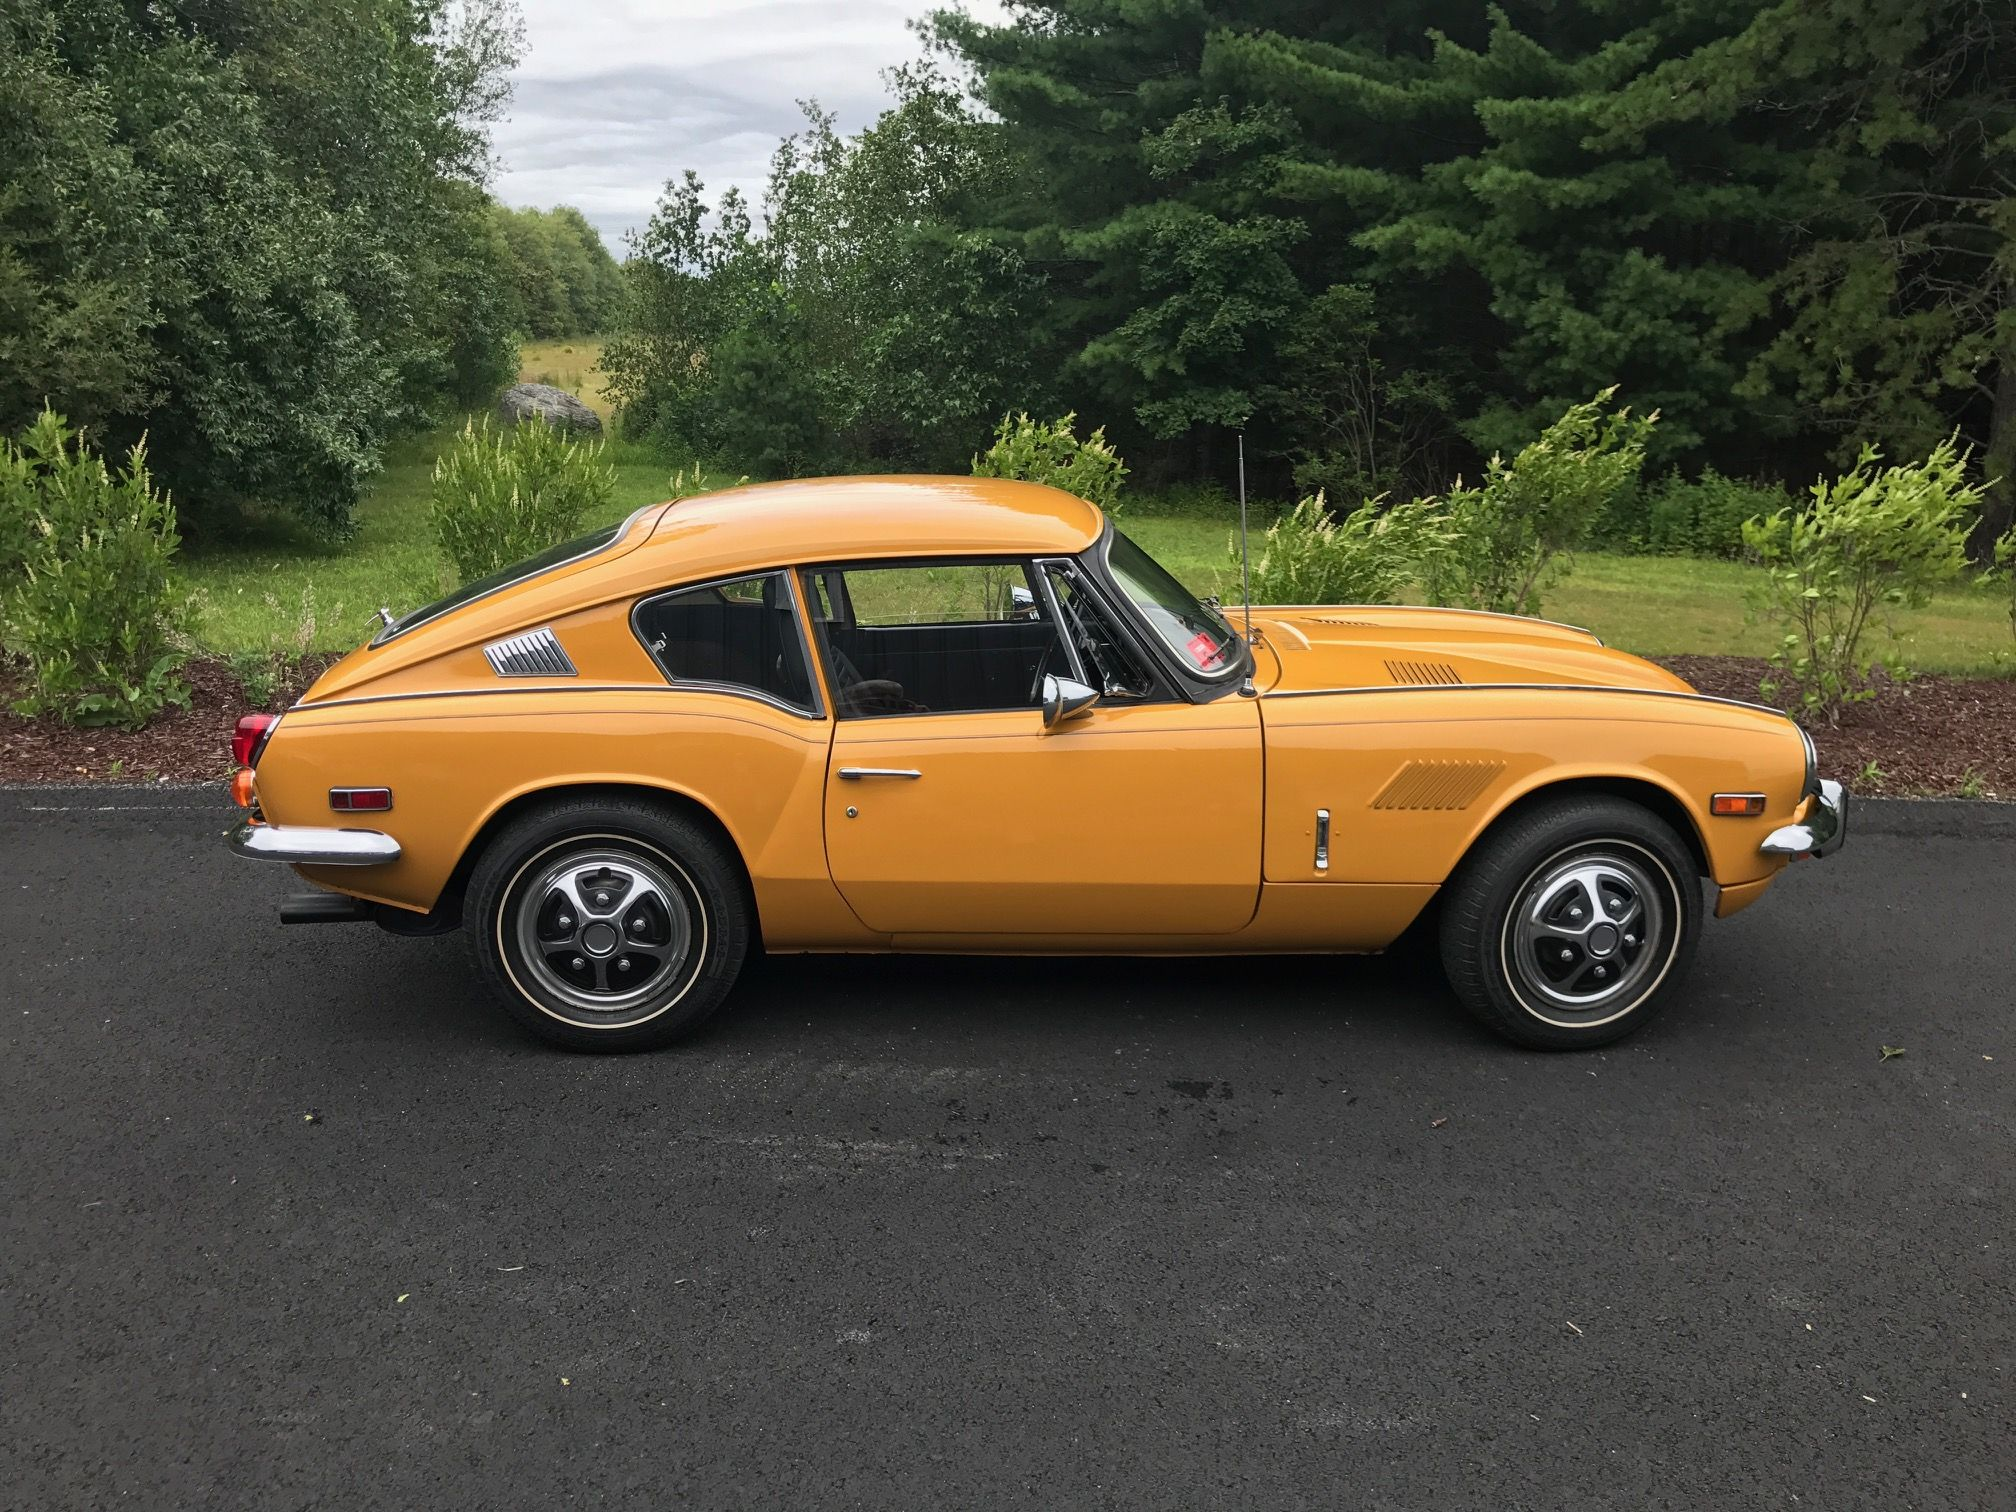 1970 triumph gt6 tom drove one when we were dating used to race it